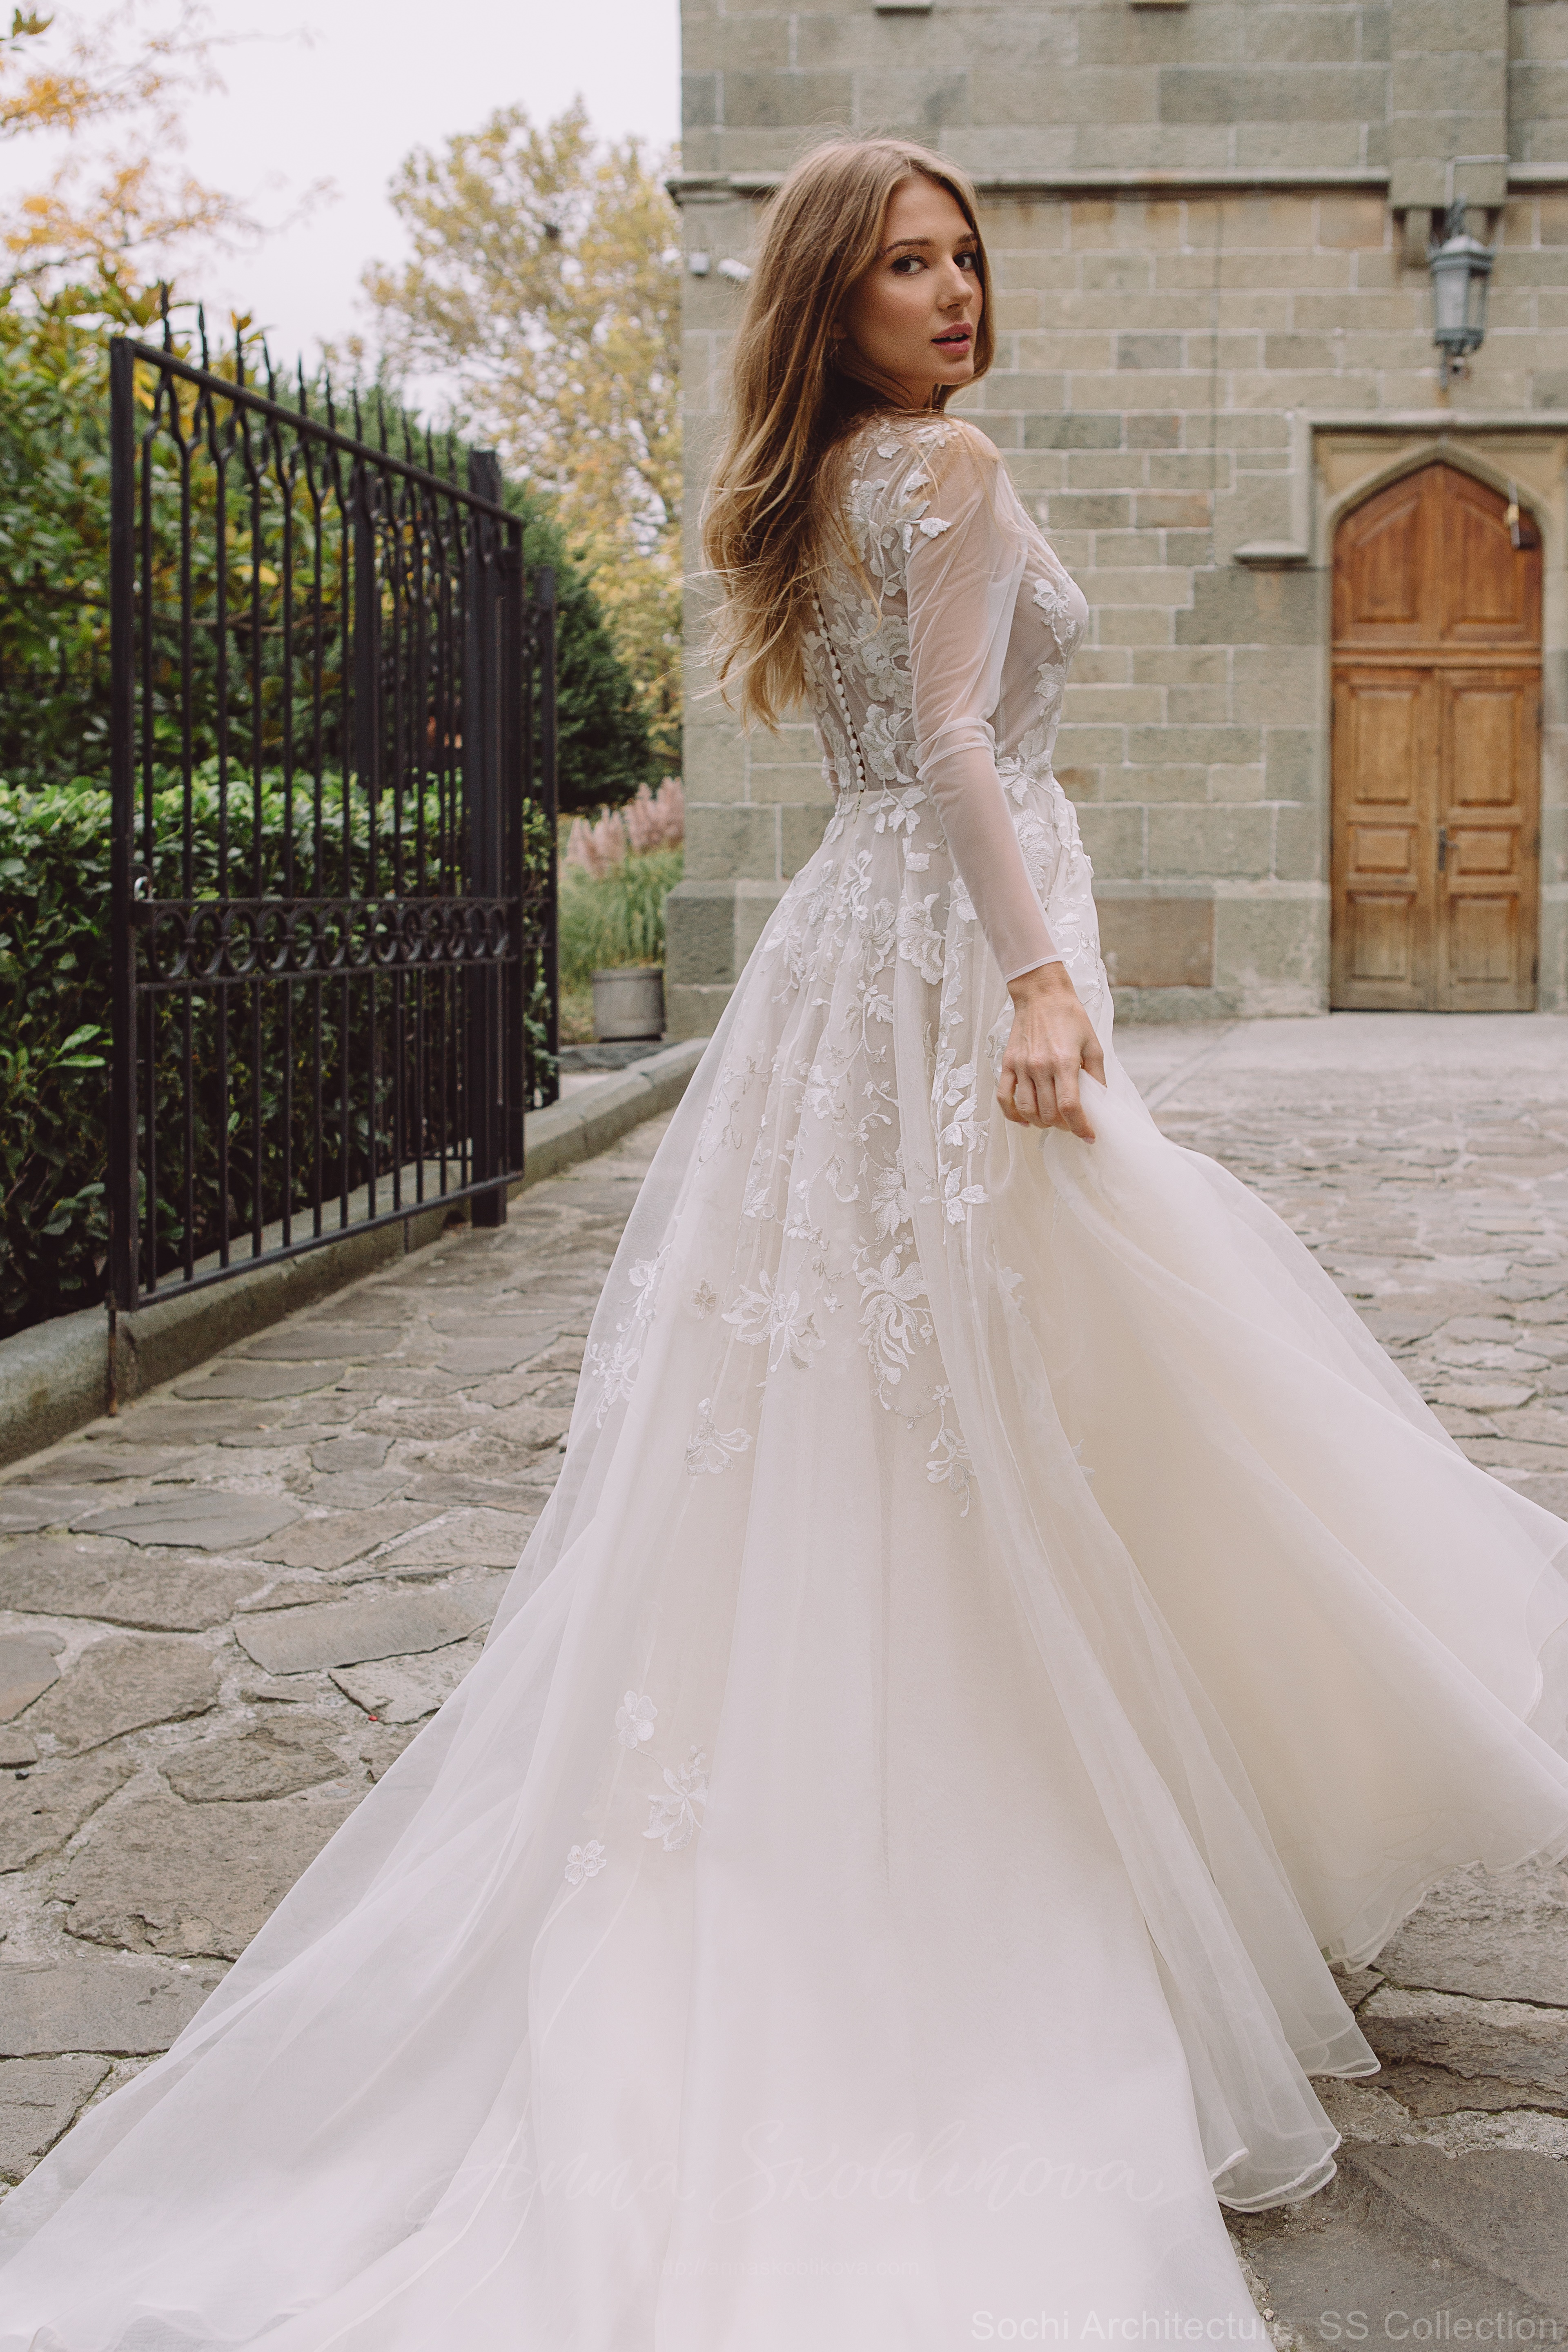 Royal wedding dress - Chloris by Anna Skoblikova